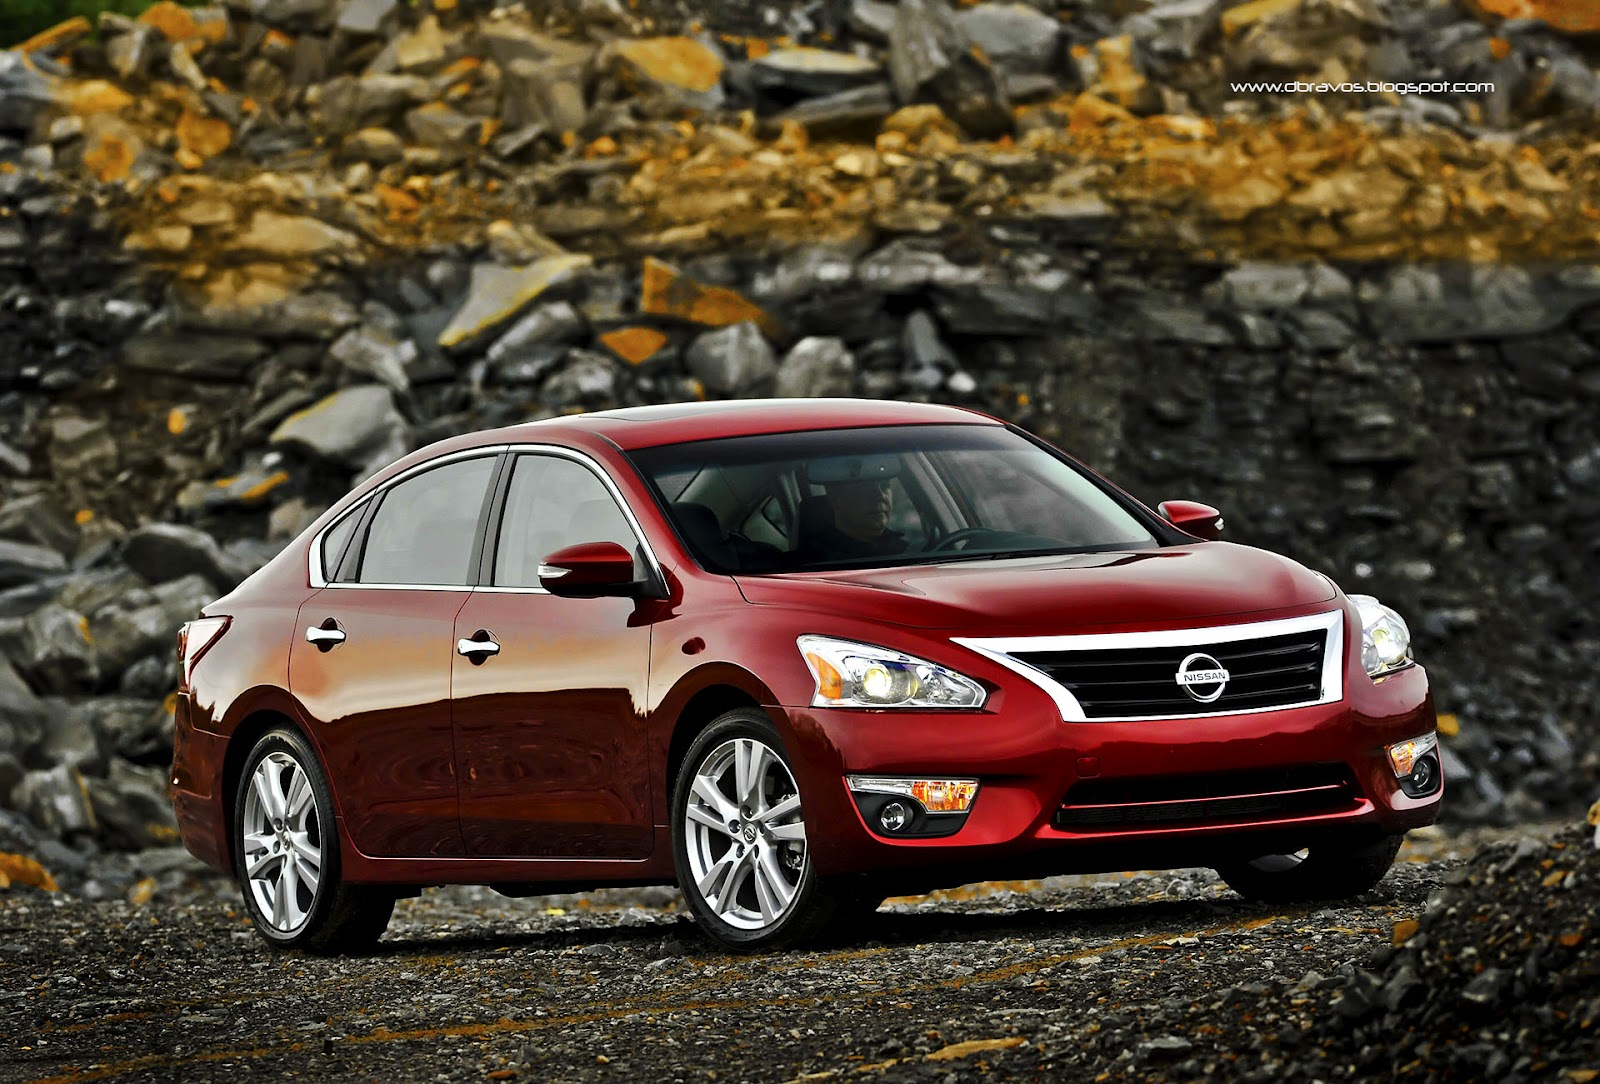 nissan altima 2013 gana valoraci n 5 estrellas en ncap. Black Bedroom Furniture Sets. Home Design Ideas